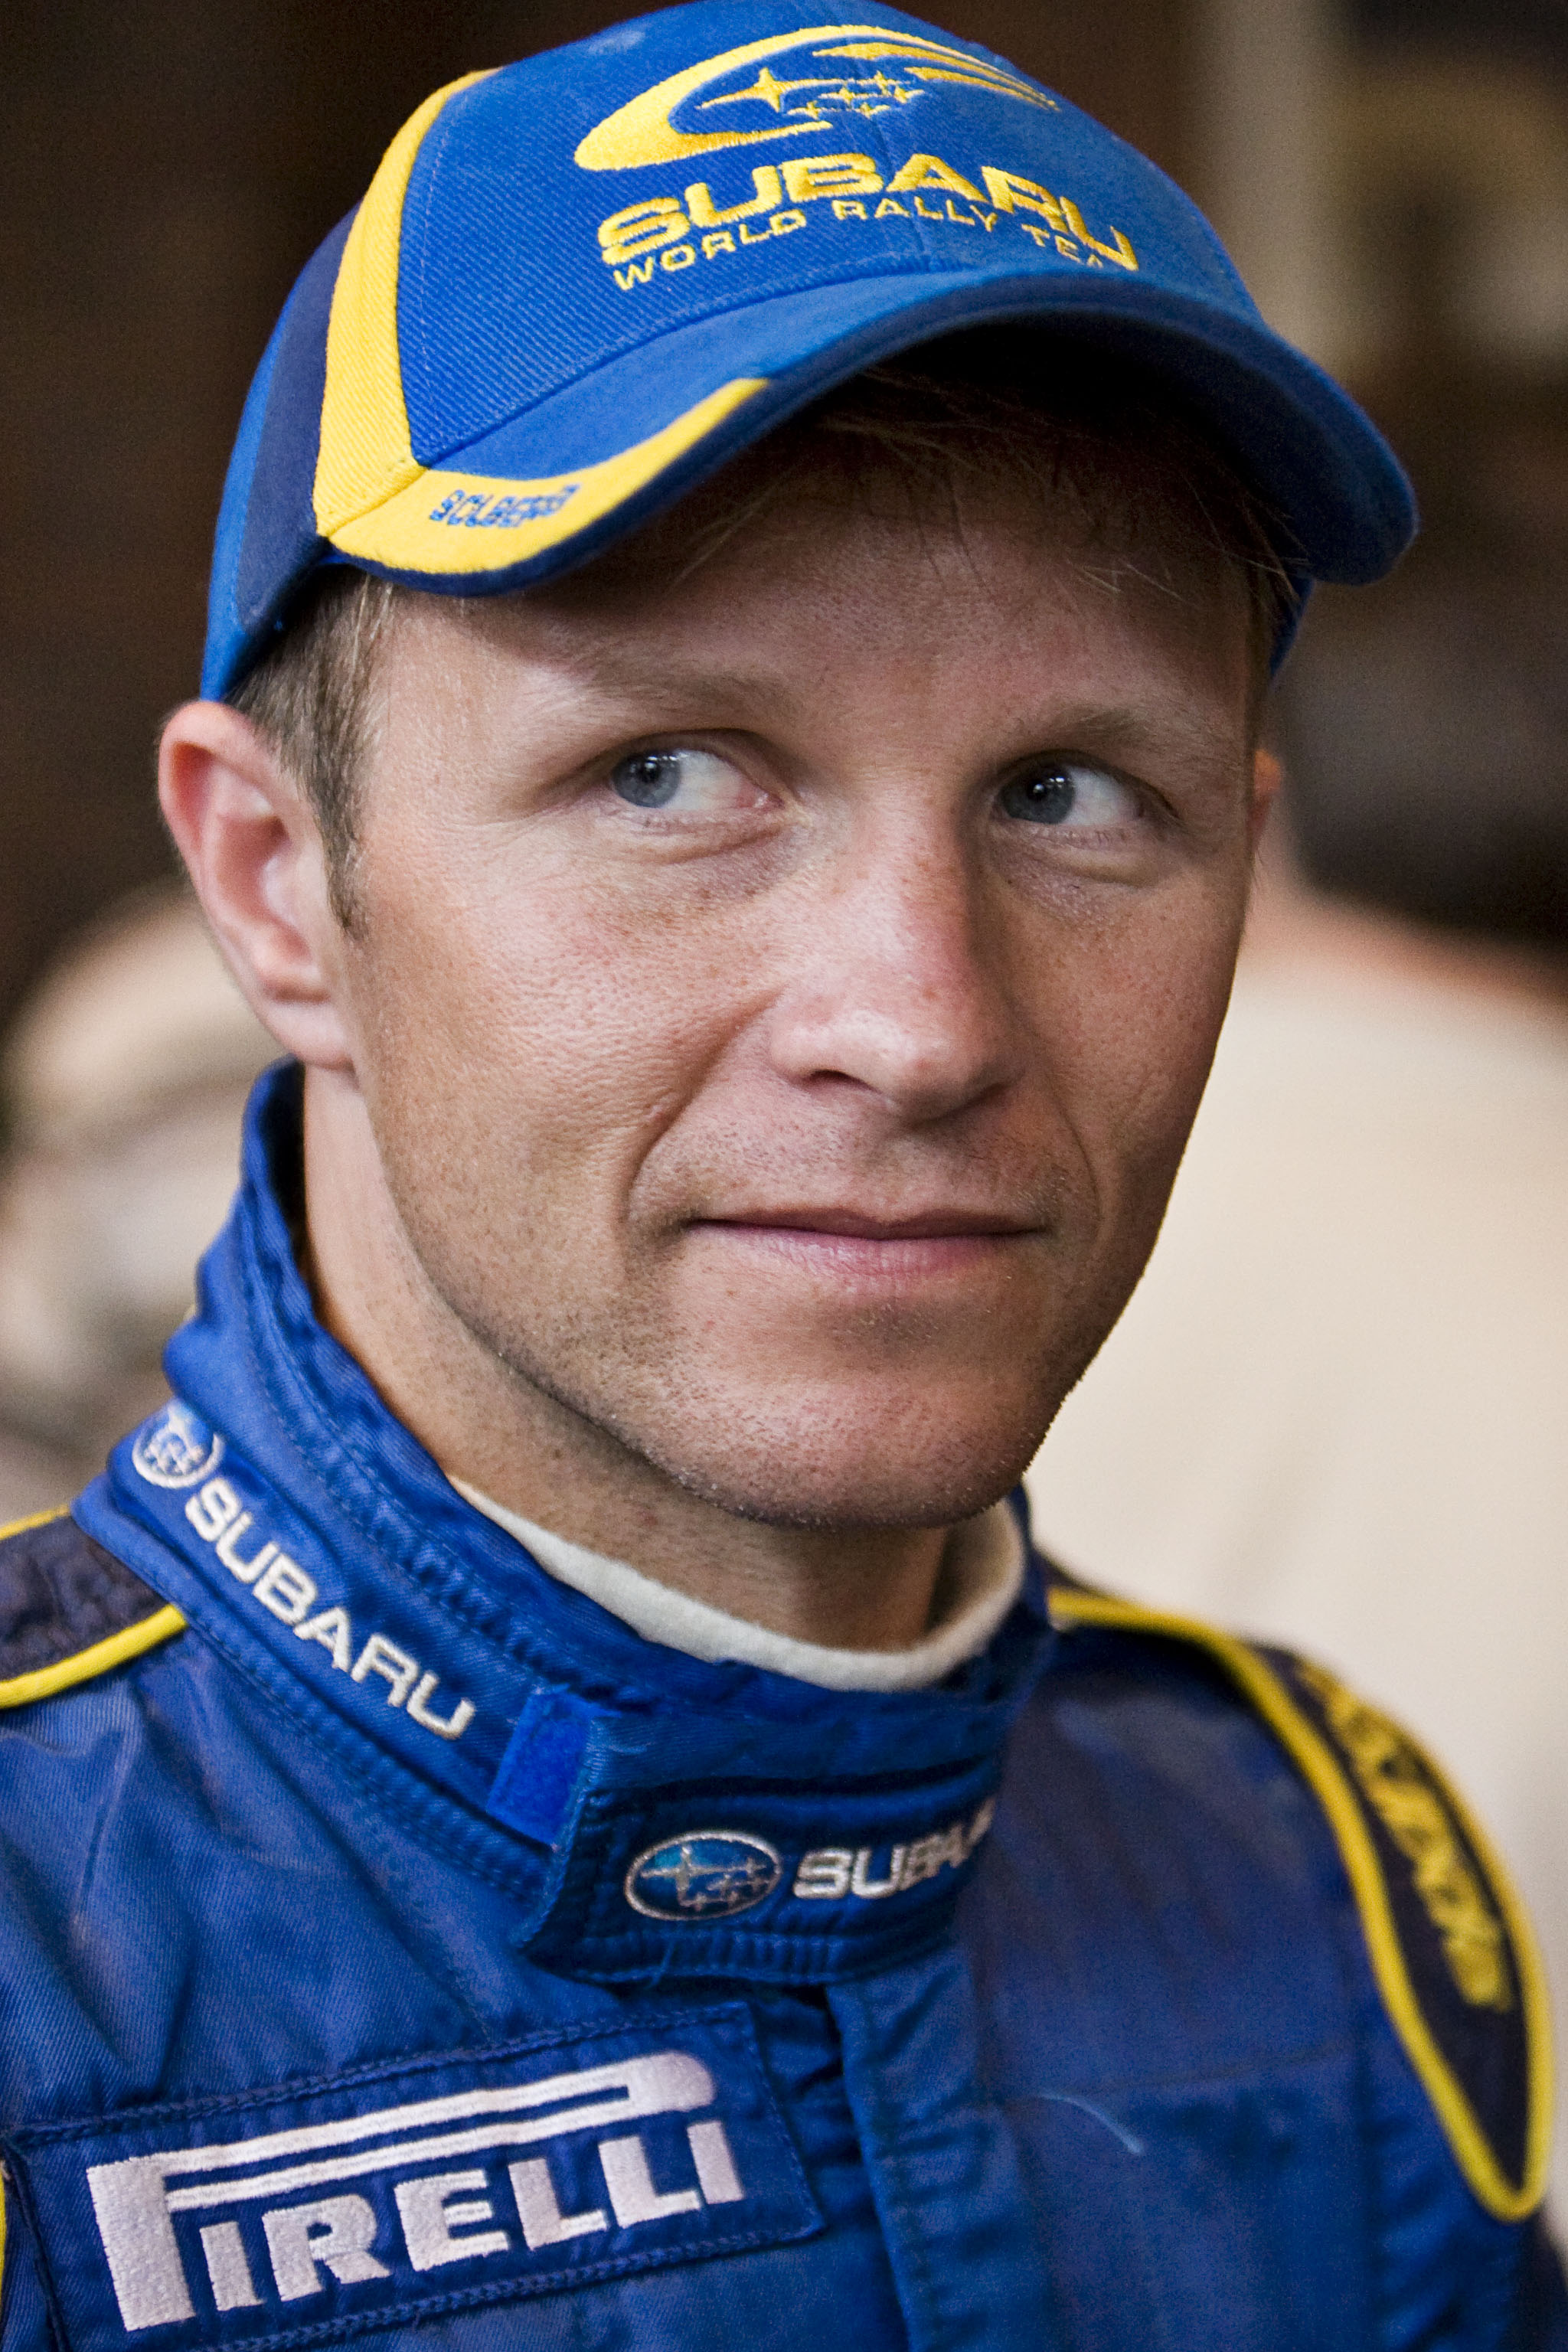 Tips: Petter Solberg, 2017s chic hair style of the cool mysterious  driver